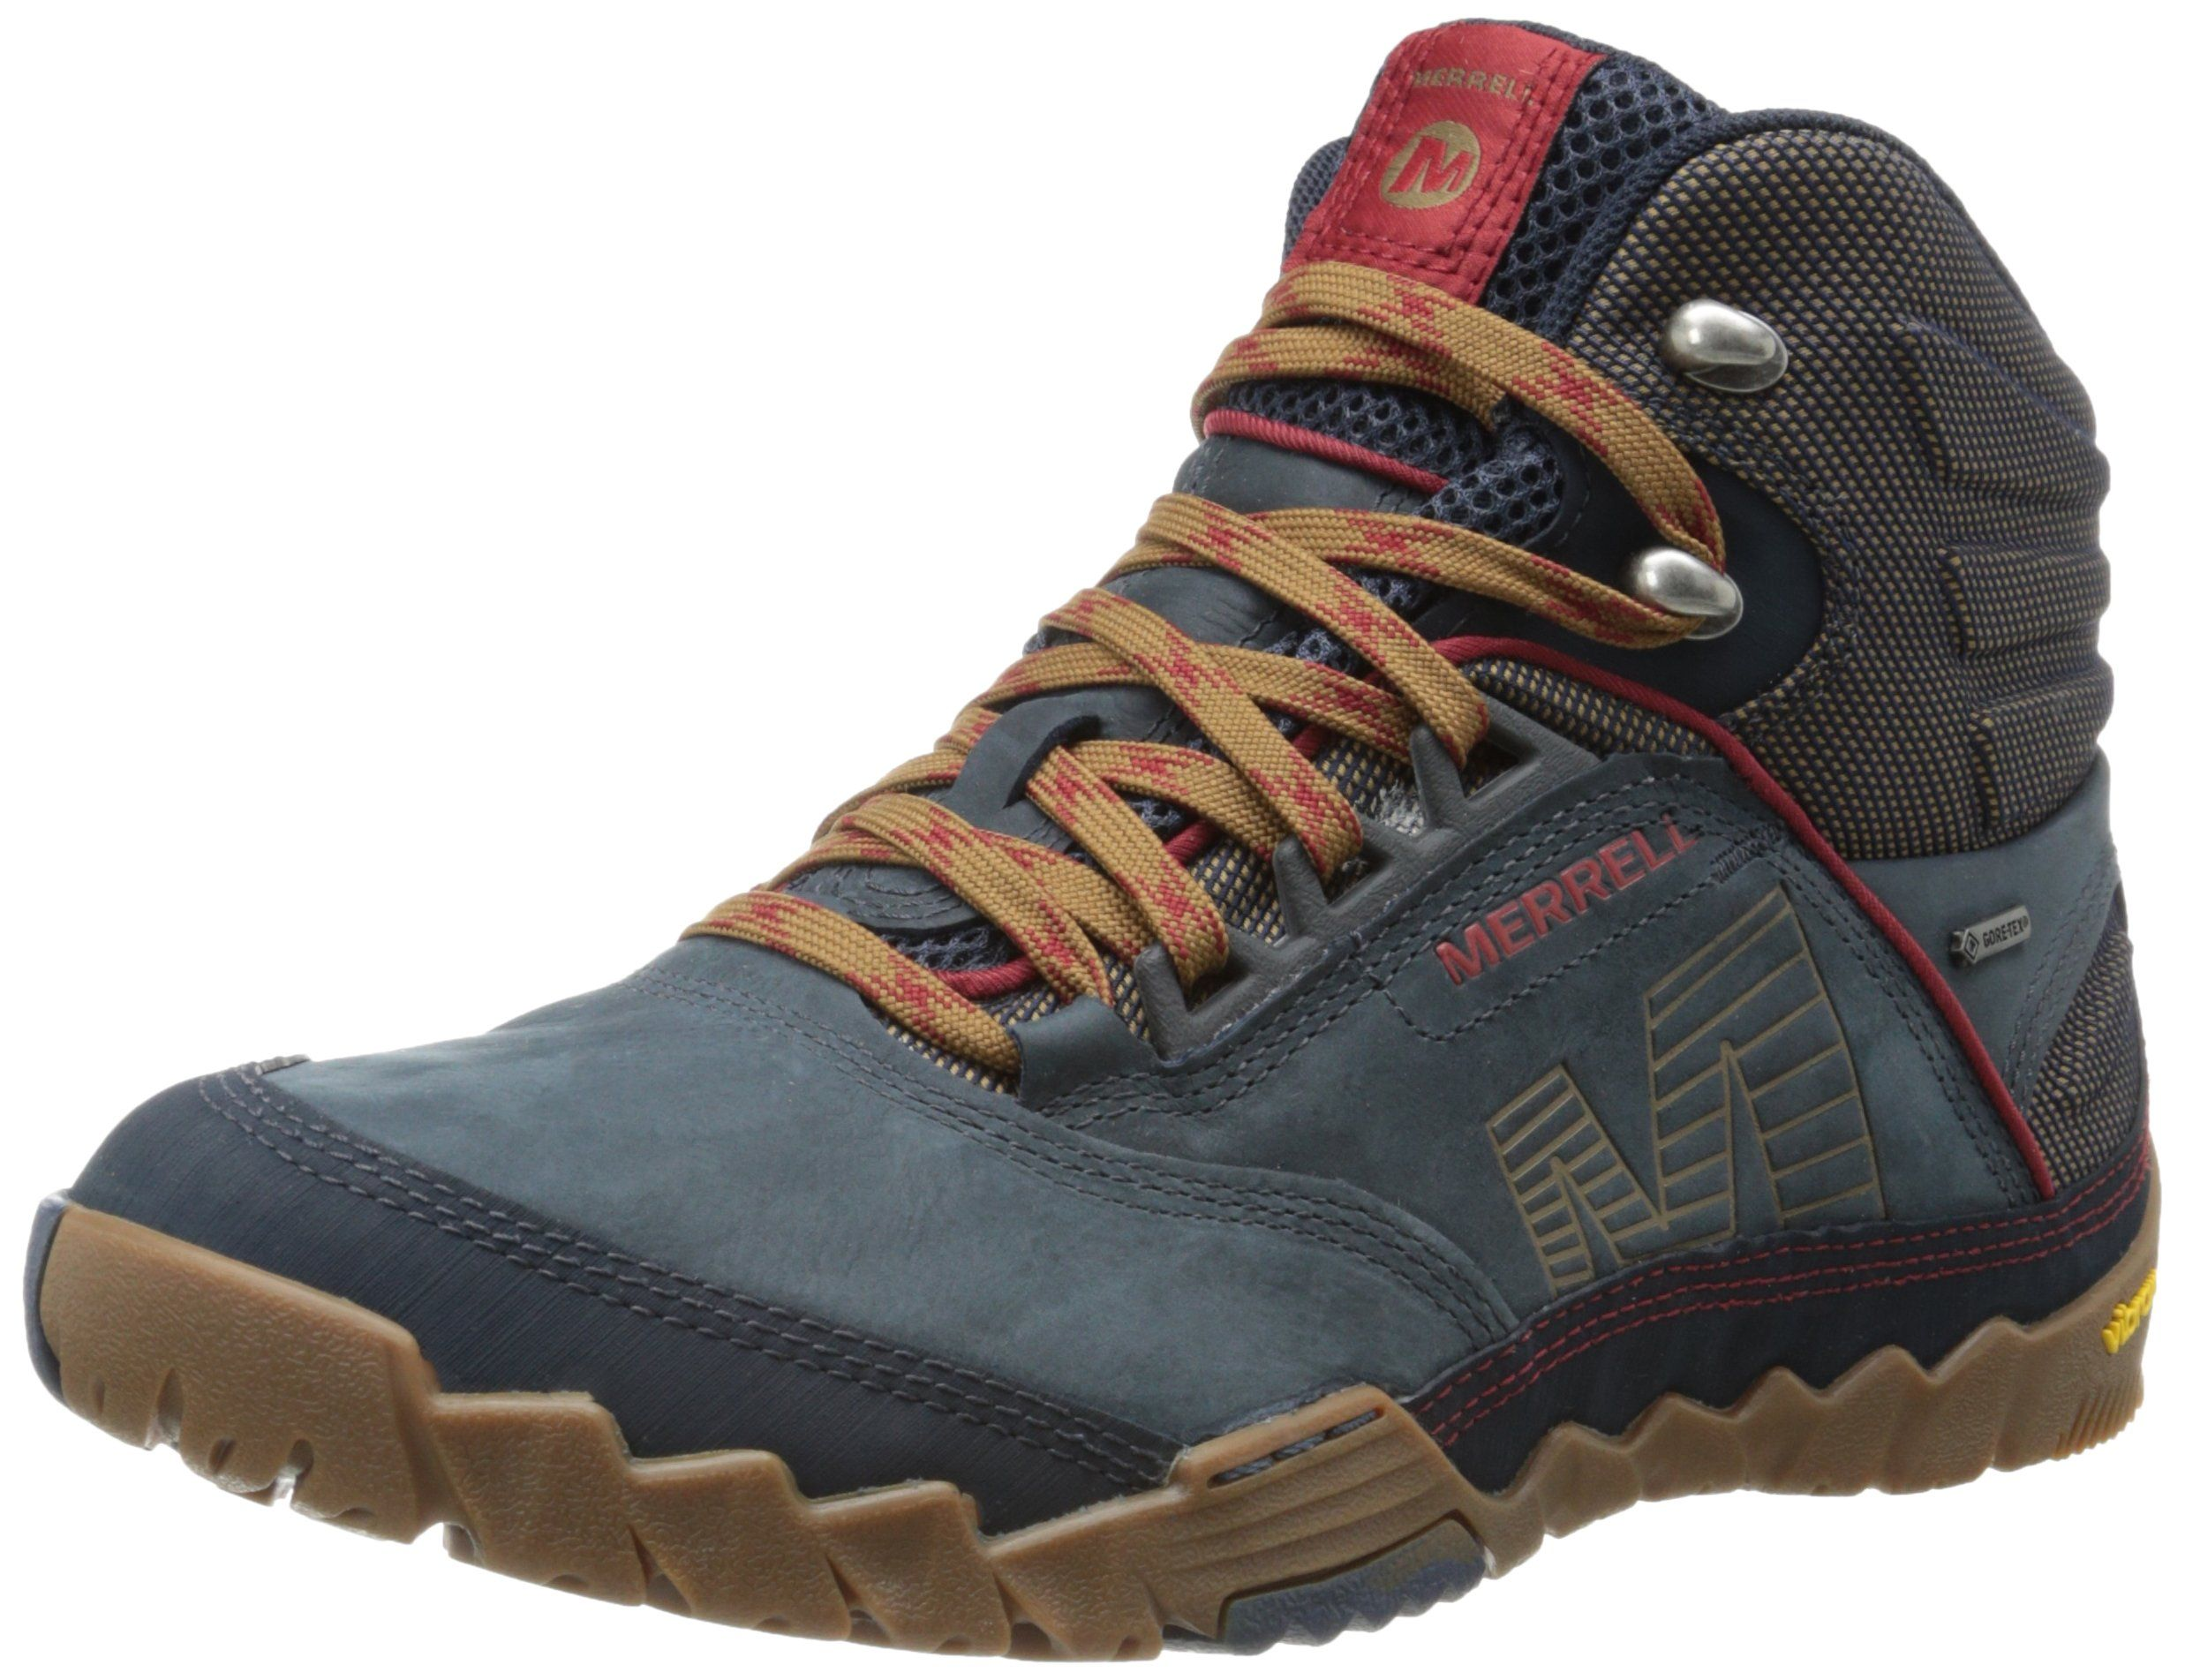 7ba8d658e41ee Merrell Men's Annex Mid Gore-Tex Boot,Blue Wing,7.5 M US | Kicks in ...